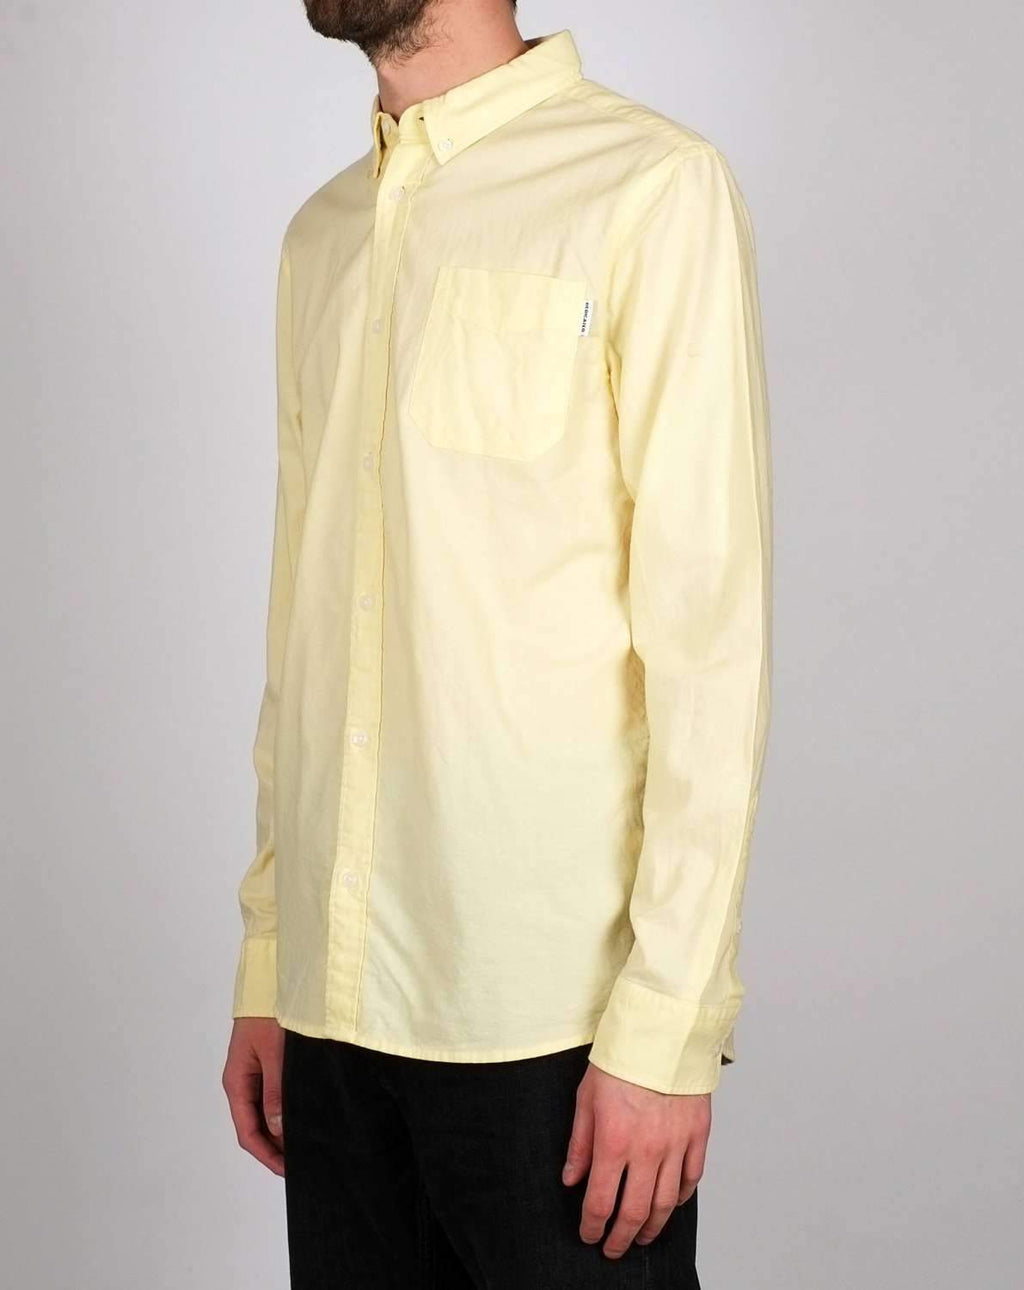 Varberg Pale yellow skjorte - noia.shop